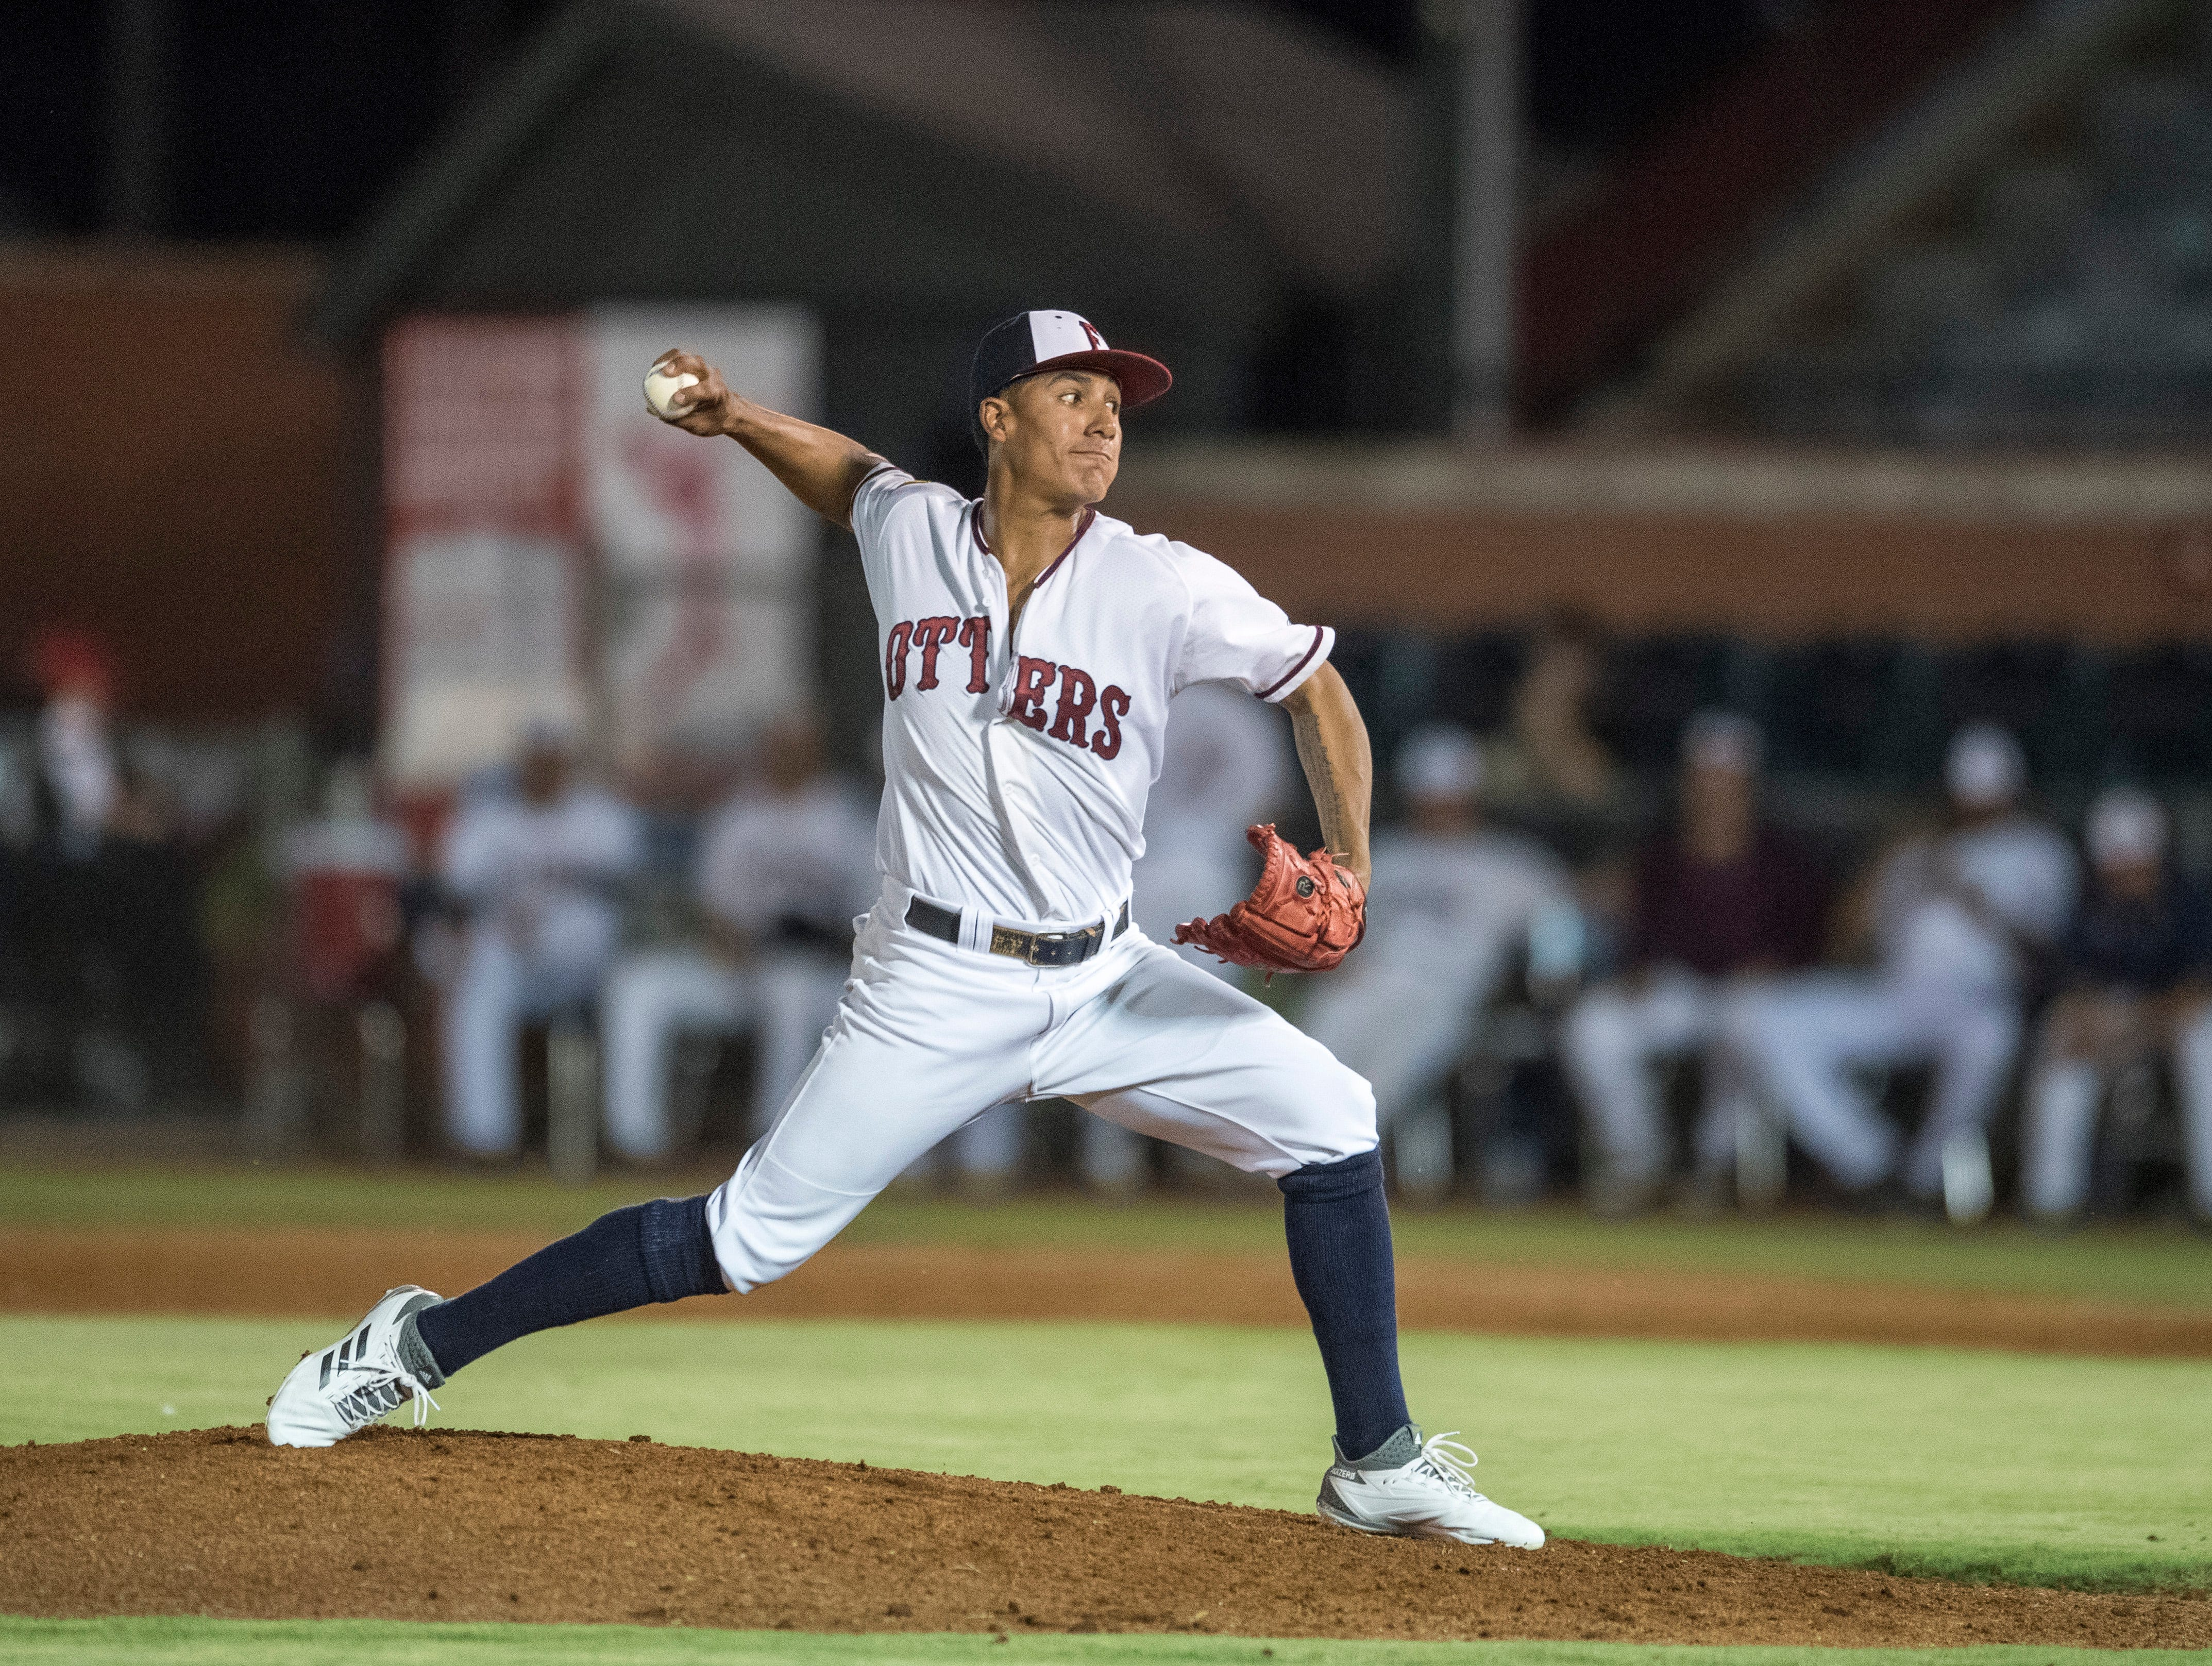 Evansville's Matt Chavarria (1) pitches the ball during game one of the Frontier League Division Series at Bosse Field against the Washington Wild Things Tuesday, September 4, 2018.